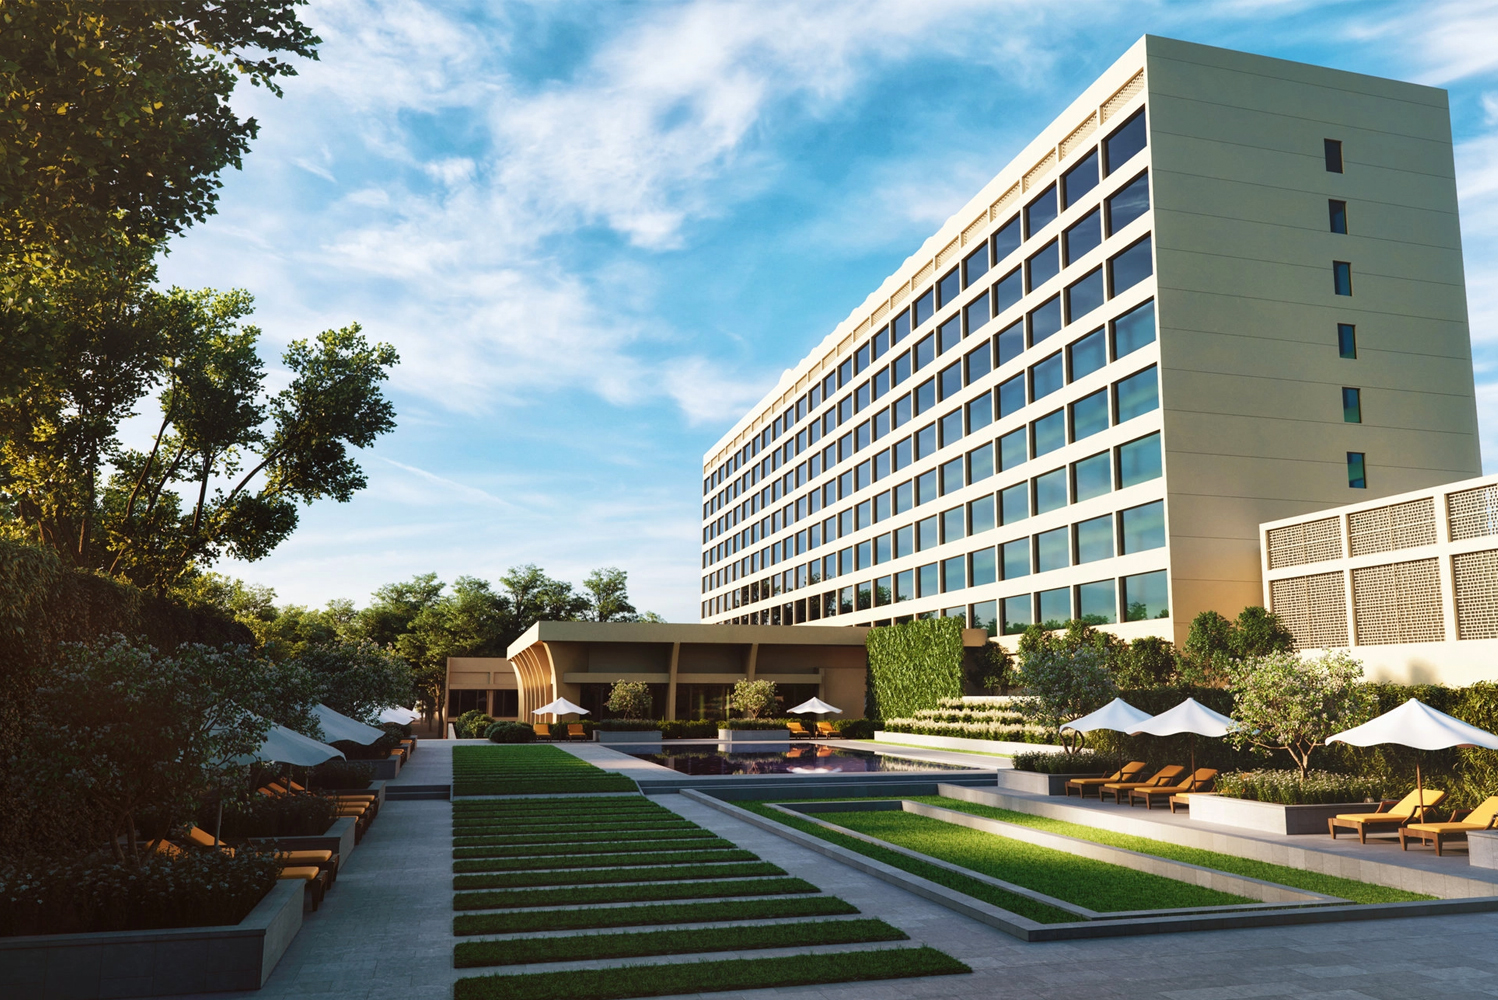 New York-based designer Adam D. Tihany of Tihany Design completed work on a $100 million refresh of the Oberoi, New Delhi.